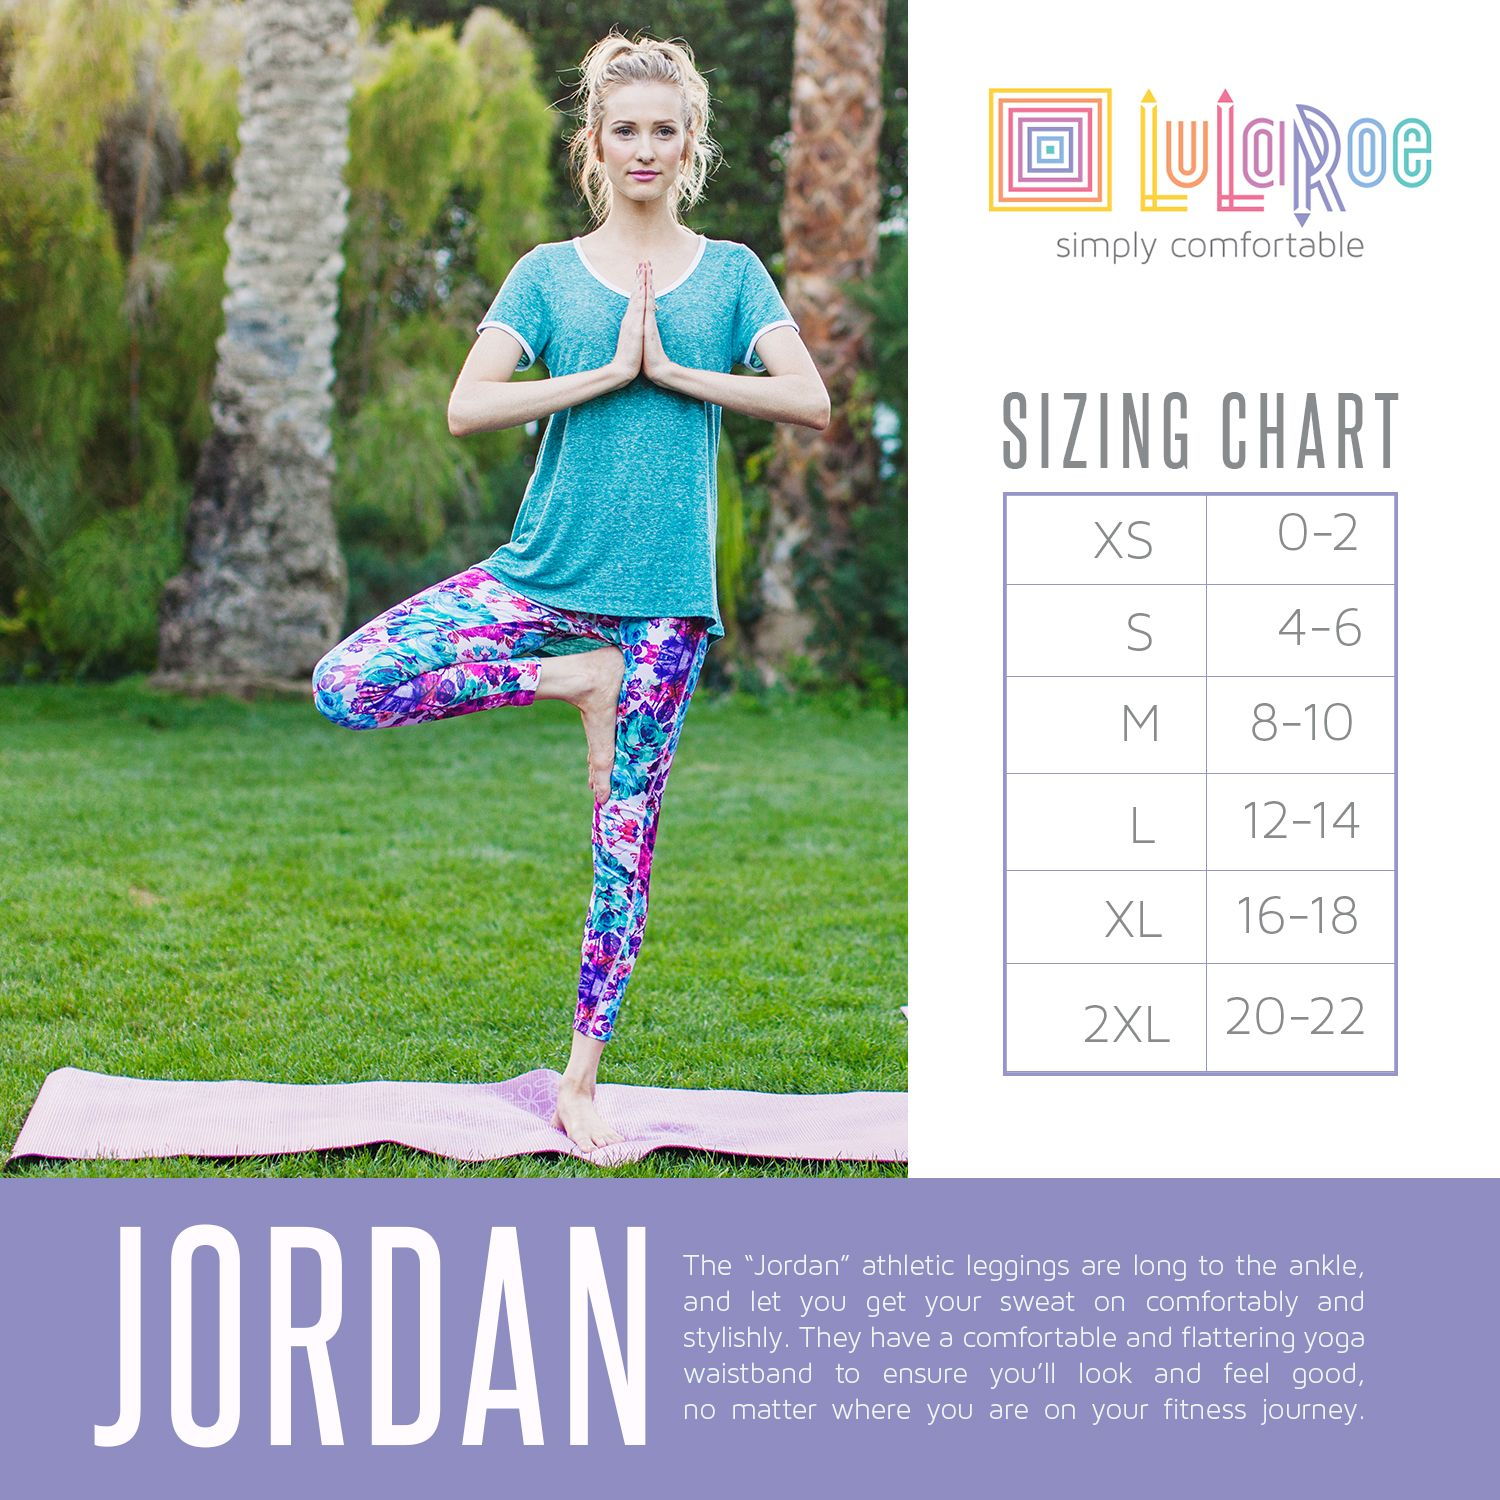 c946de6514b8e LuLaRoe Jordan Sizing Chart. Size up one if you prefer a looser fit.  Double-stitched, full length athlectic wear.